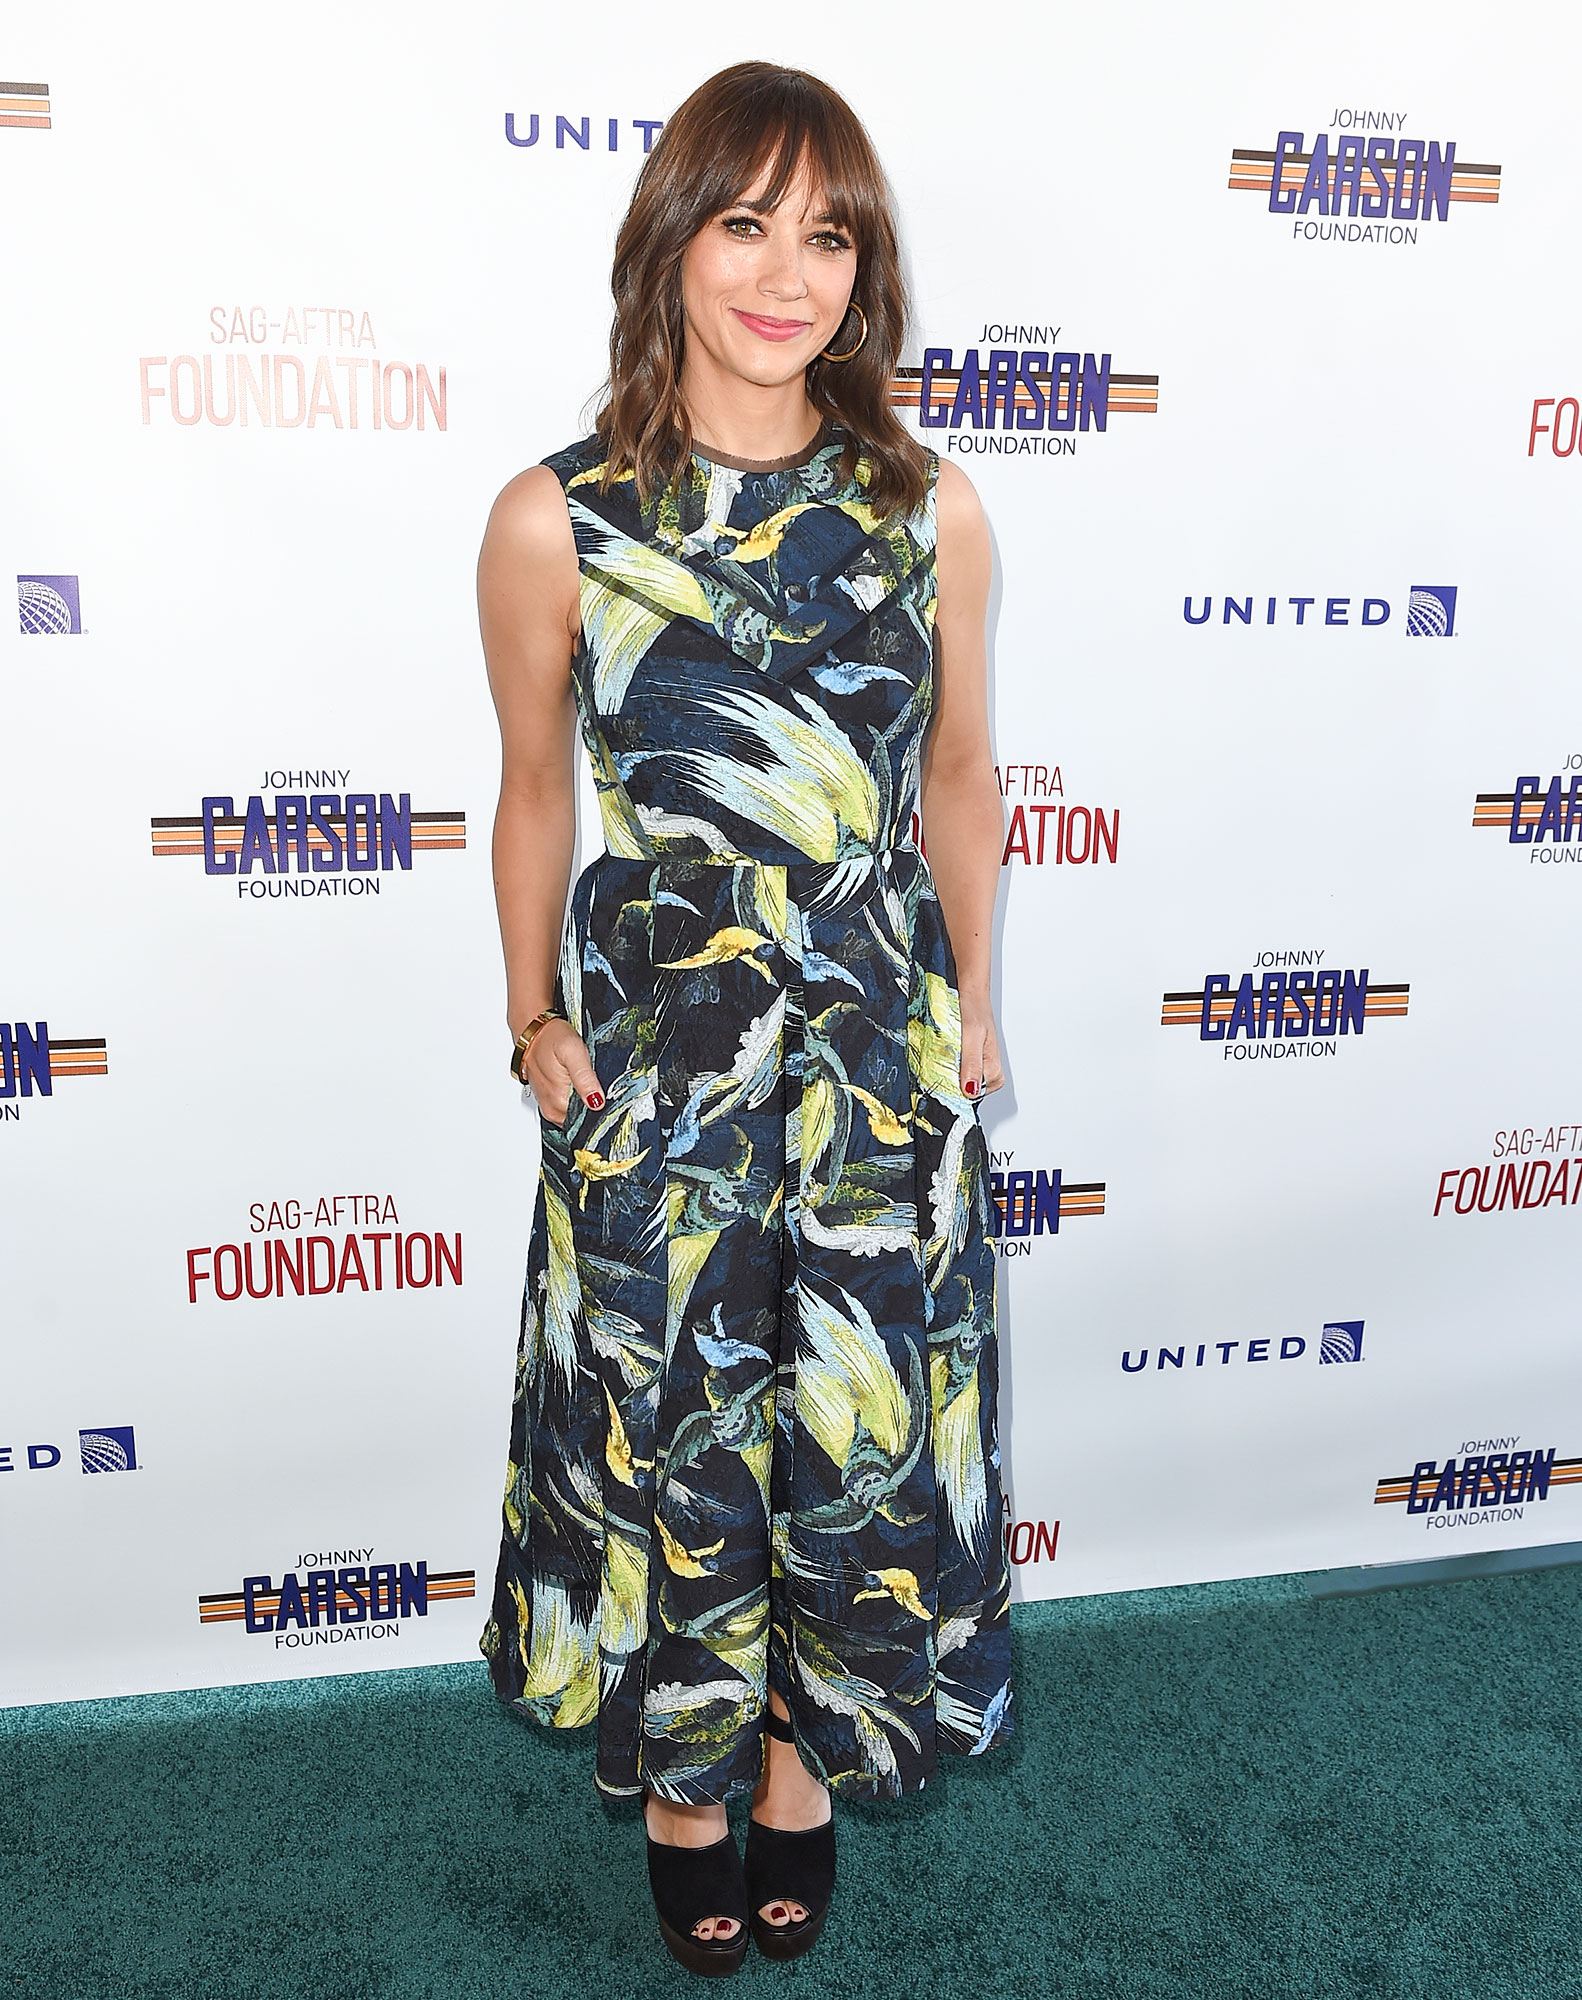 SAG-AFTRA Foundation Honors Rashida Jones with Actors Inspiration Award at 8th Annual L.A. Golf Classic Fundraiser